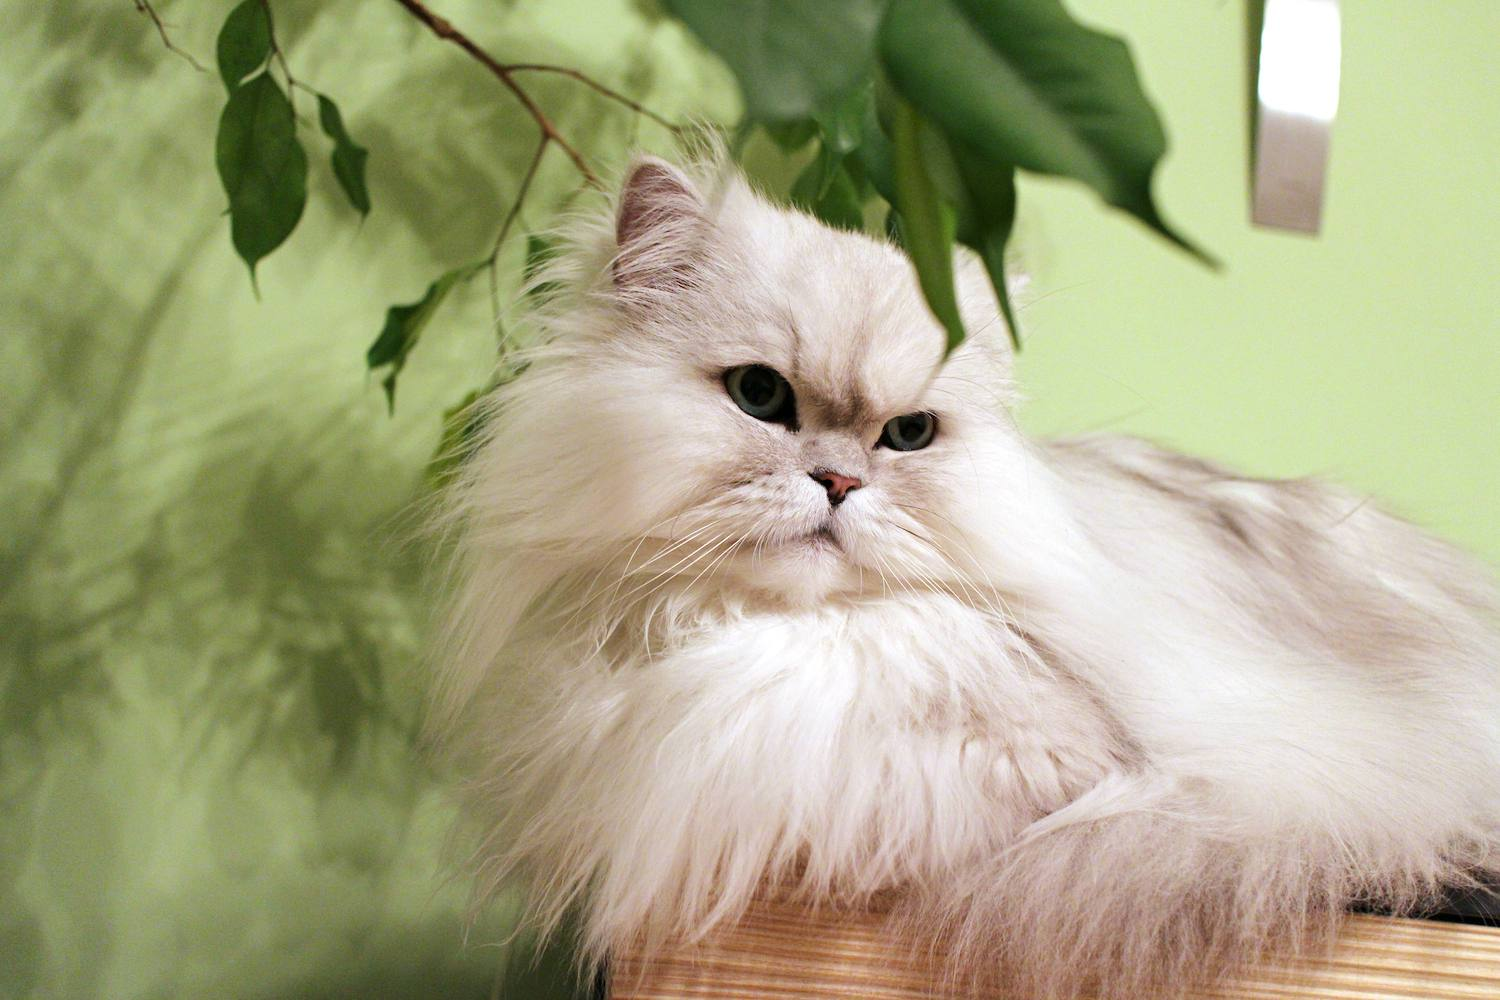 Persian cat lounging inside by a plant